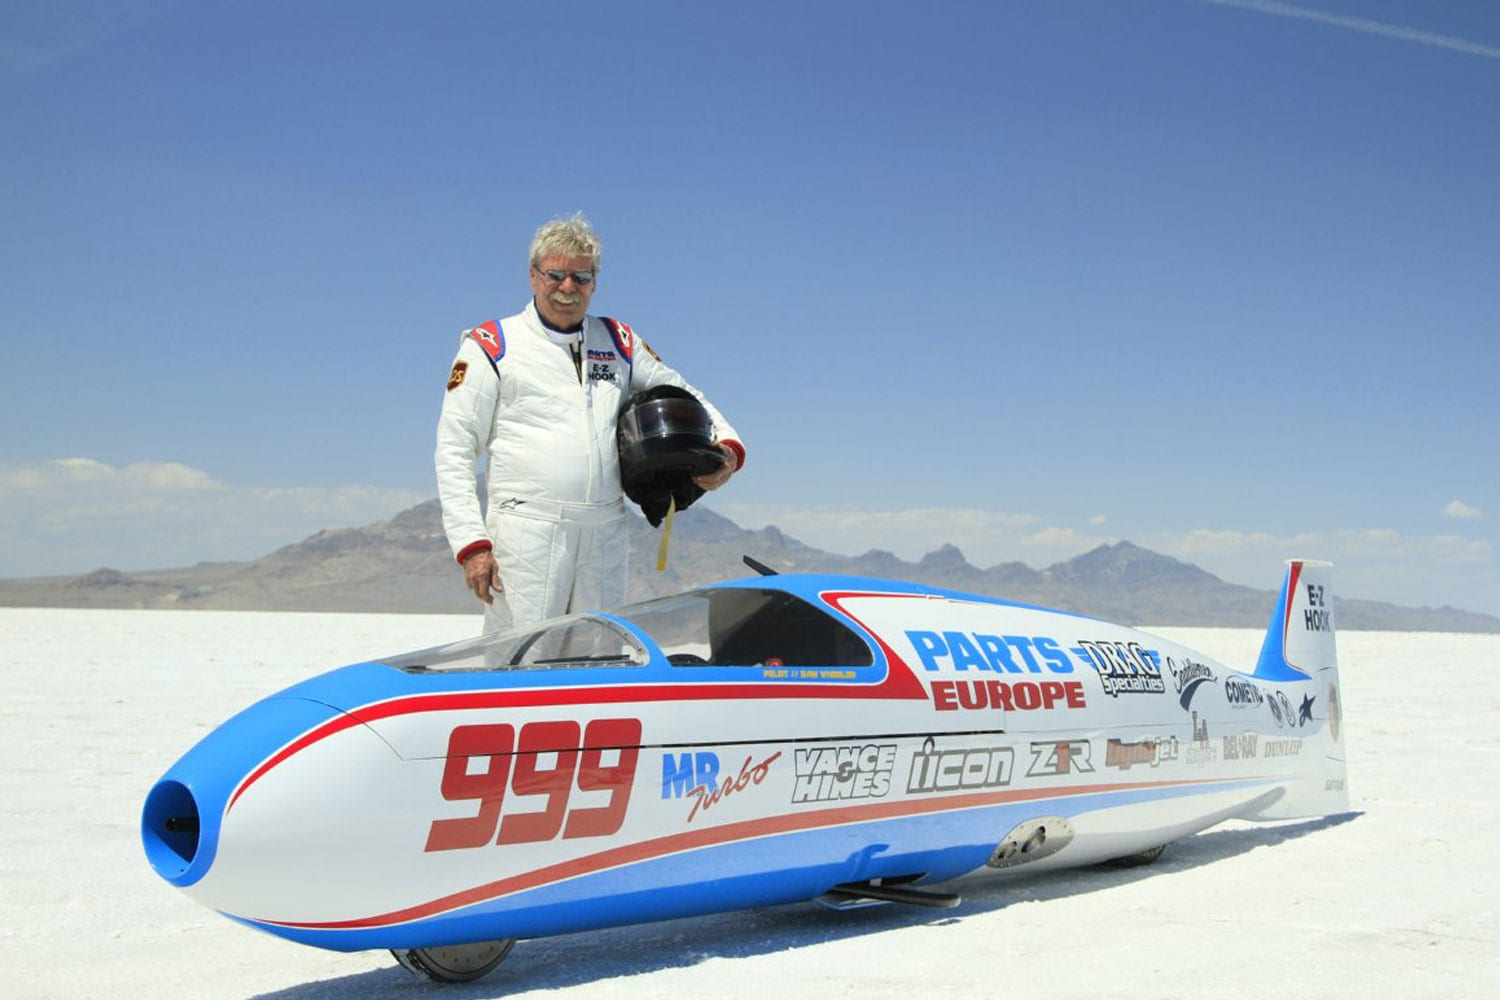 Sam Wheeler at Bonneville Salt Flats